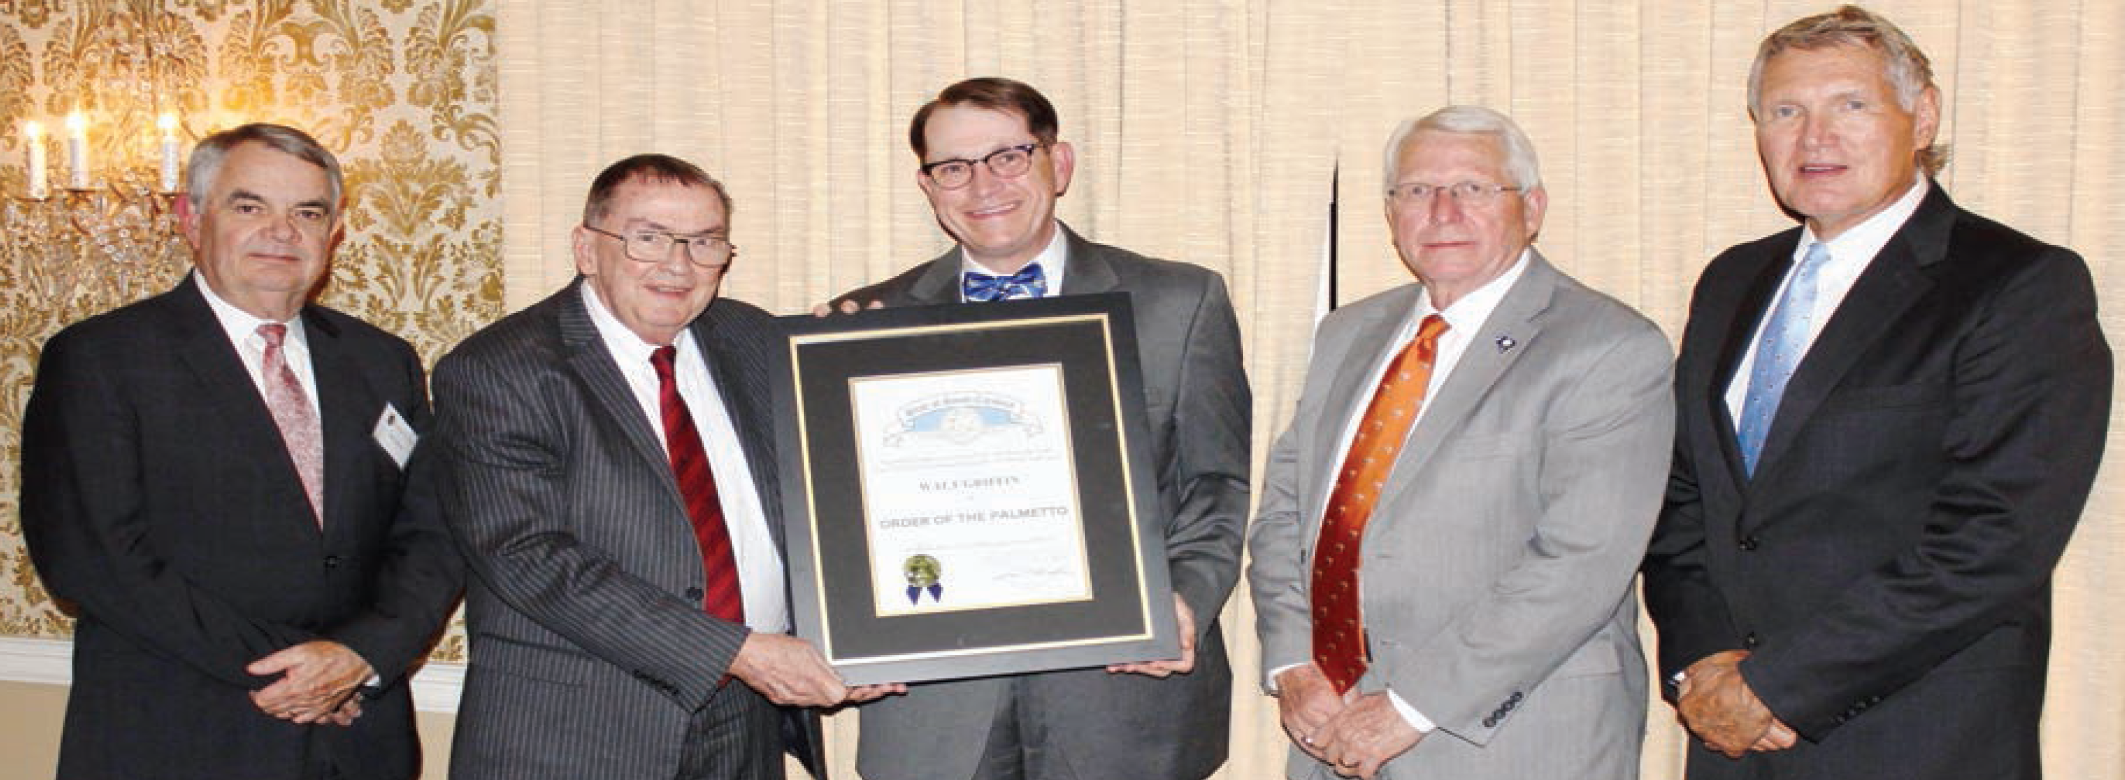 Outgoing Limestone College President Dr. Walt Griffin was presented with The Order of The Palmetto on October 26, 2017 at the Piedmont Club in Spartanburg.